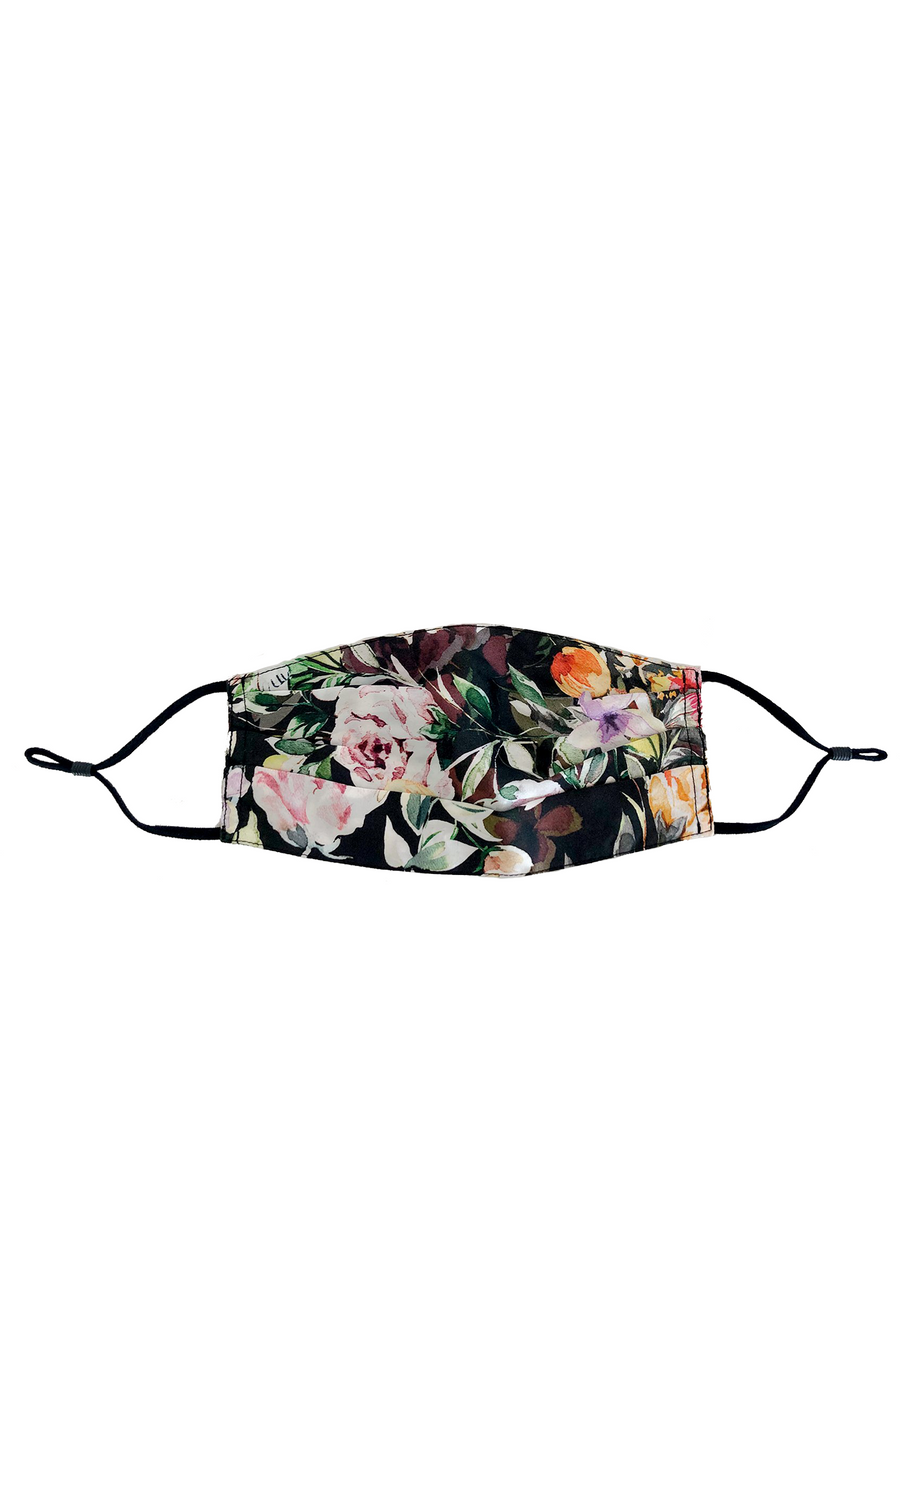 Silk Face Mask in Floral